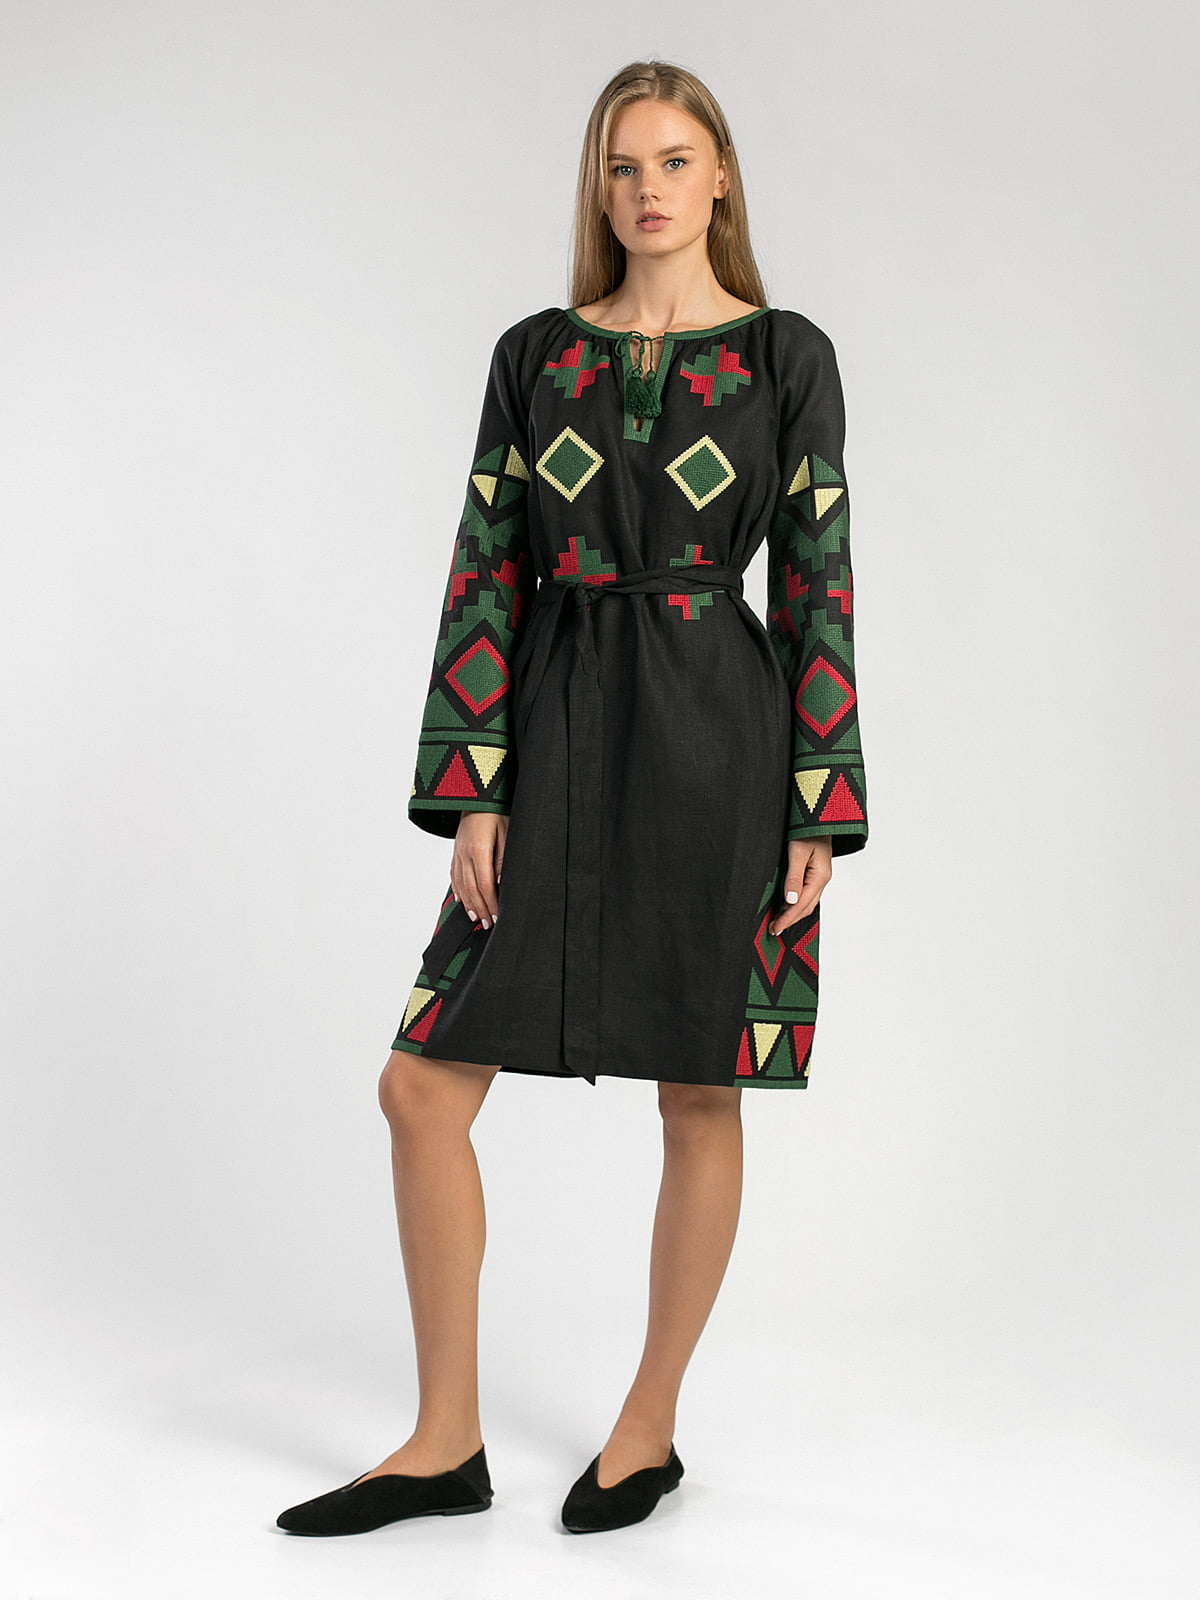 Black free-cut dress with massive embroidery ETHNO8 Black 4